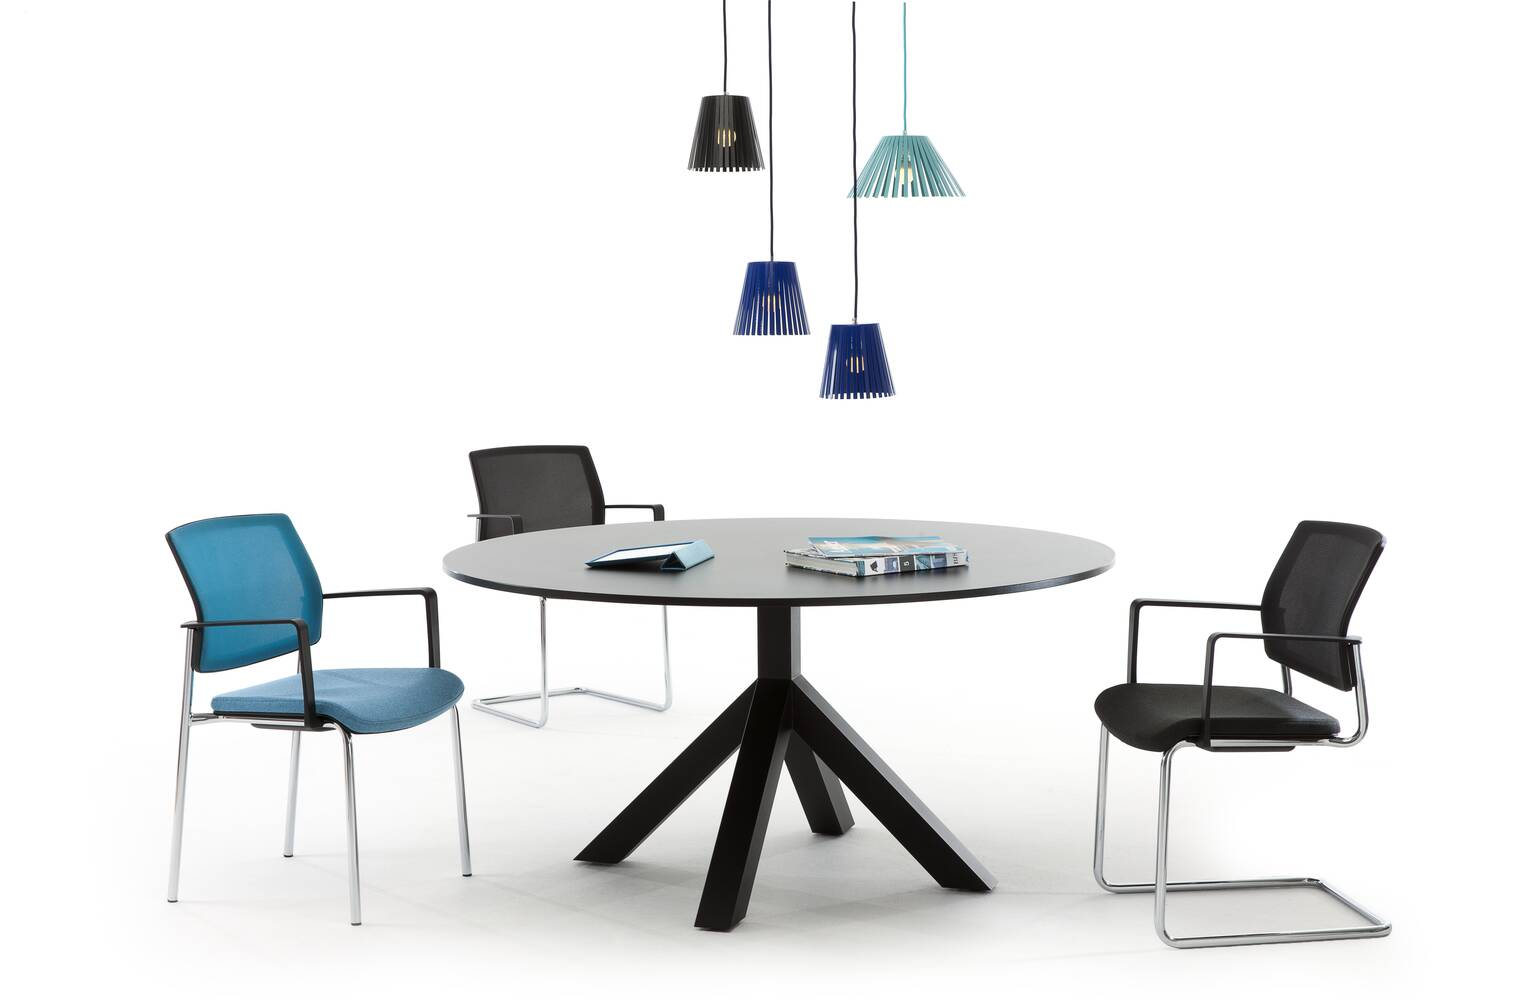 Gispen Dukdalf table round in black with Ray pendant lamps and three Zinn chairs front view